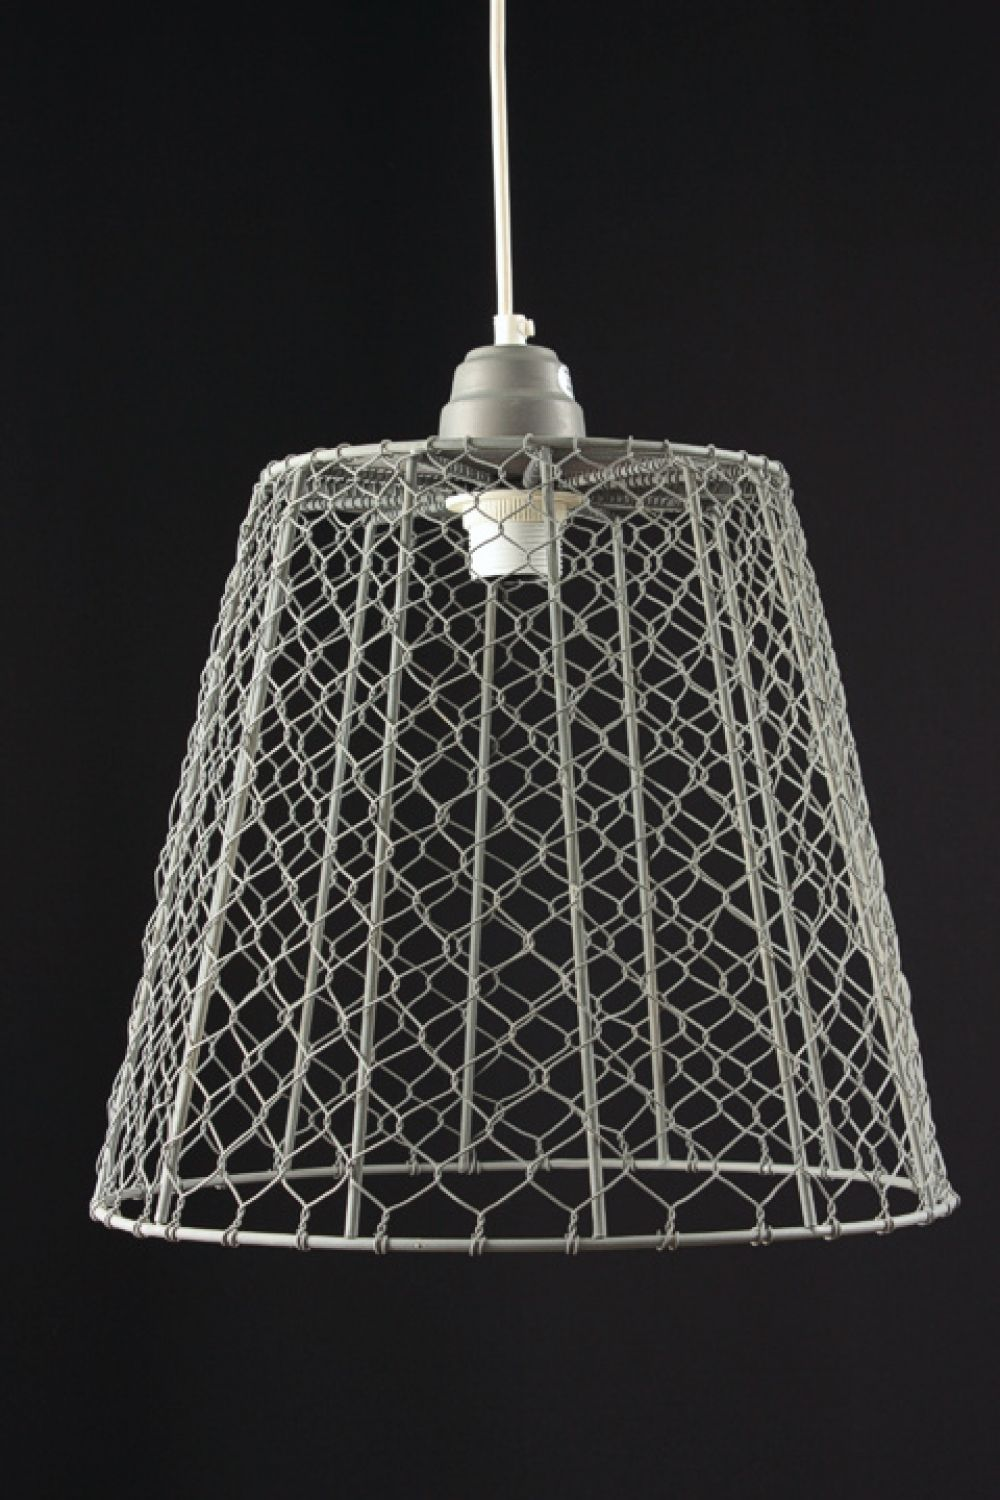 New Wire Mesh Lamp Shades Lamp Anglepoise Lamp Lamp Shades